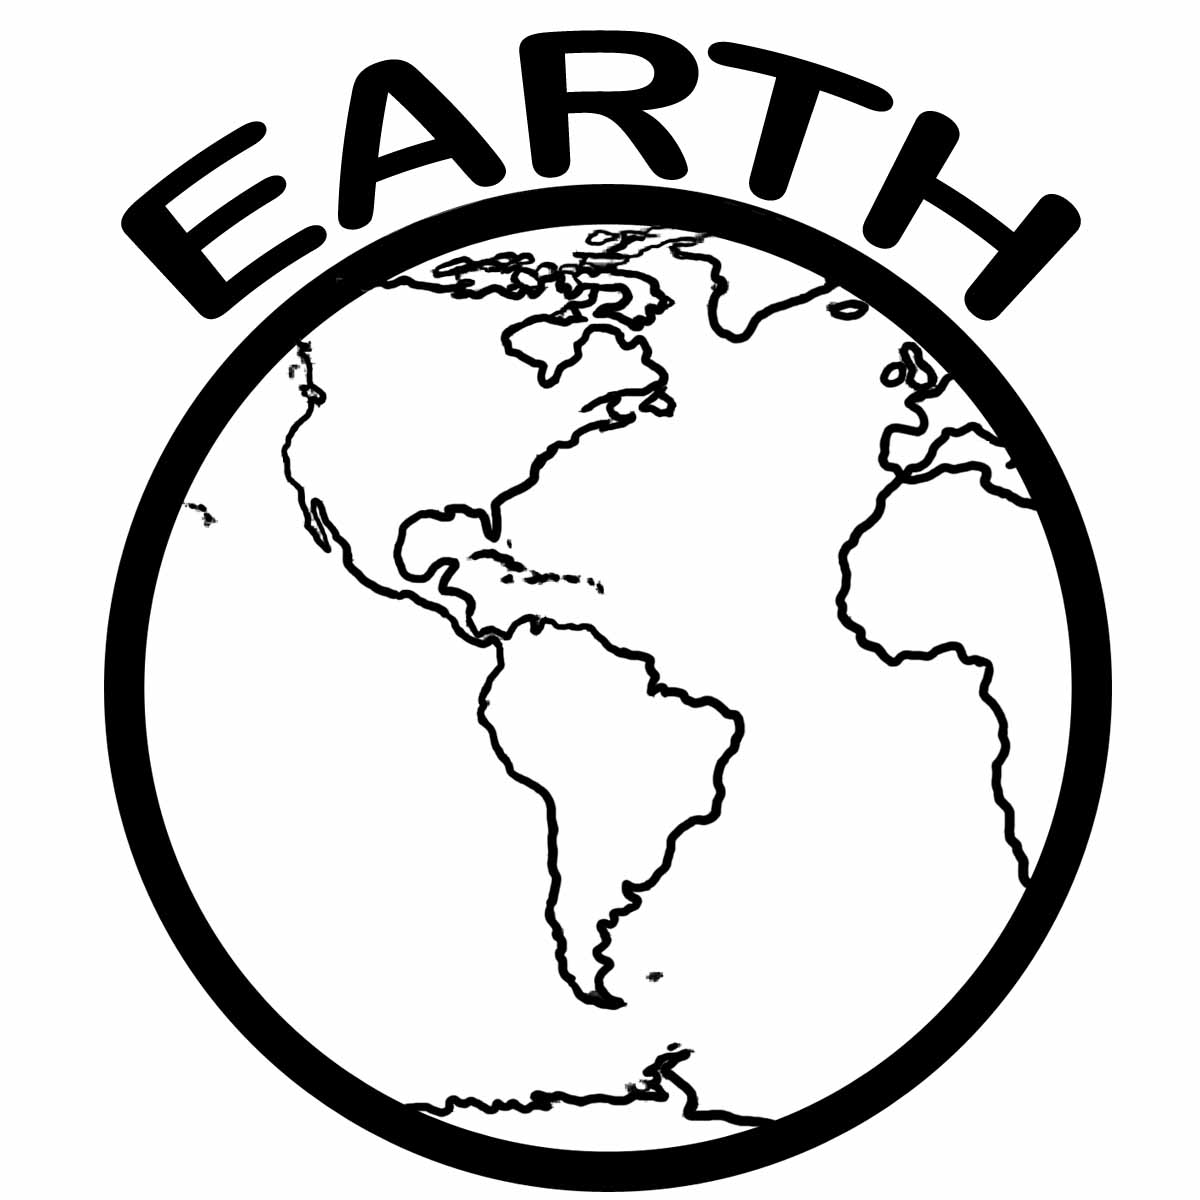 Planet Earth Coloring Pages-Planet Earth Coloring Pages-14